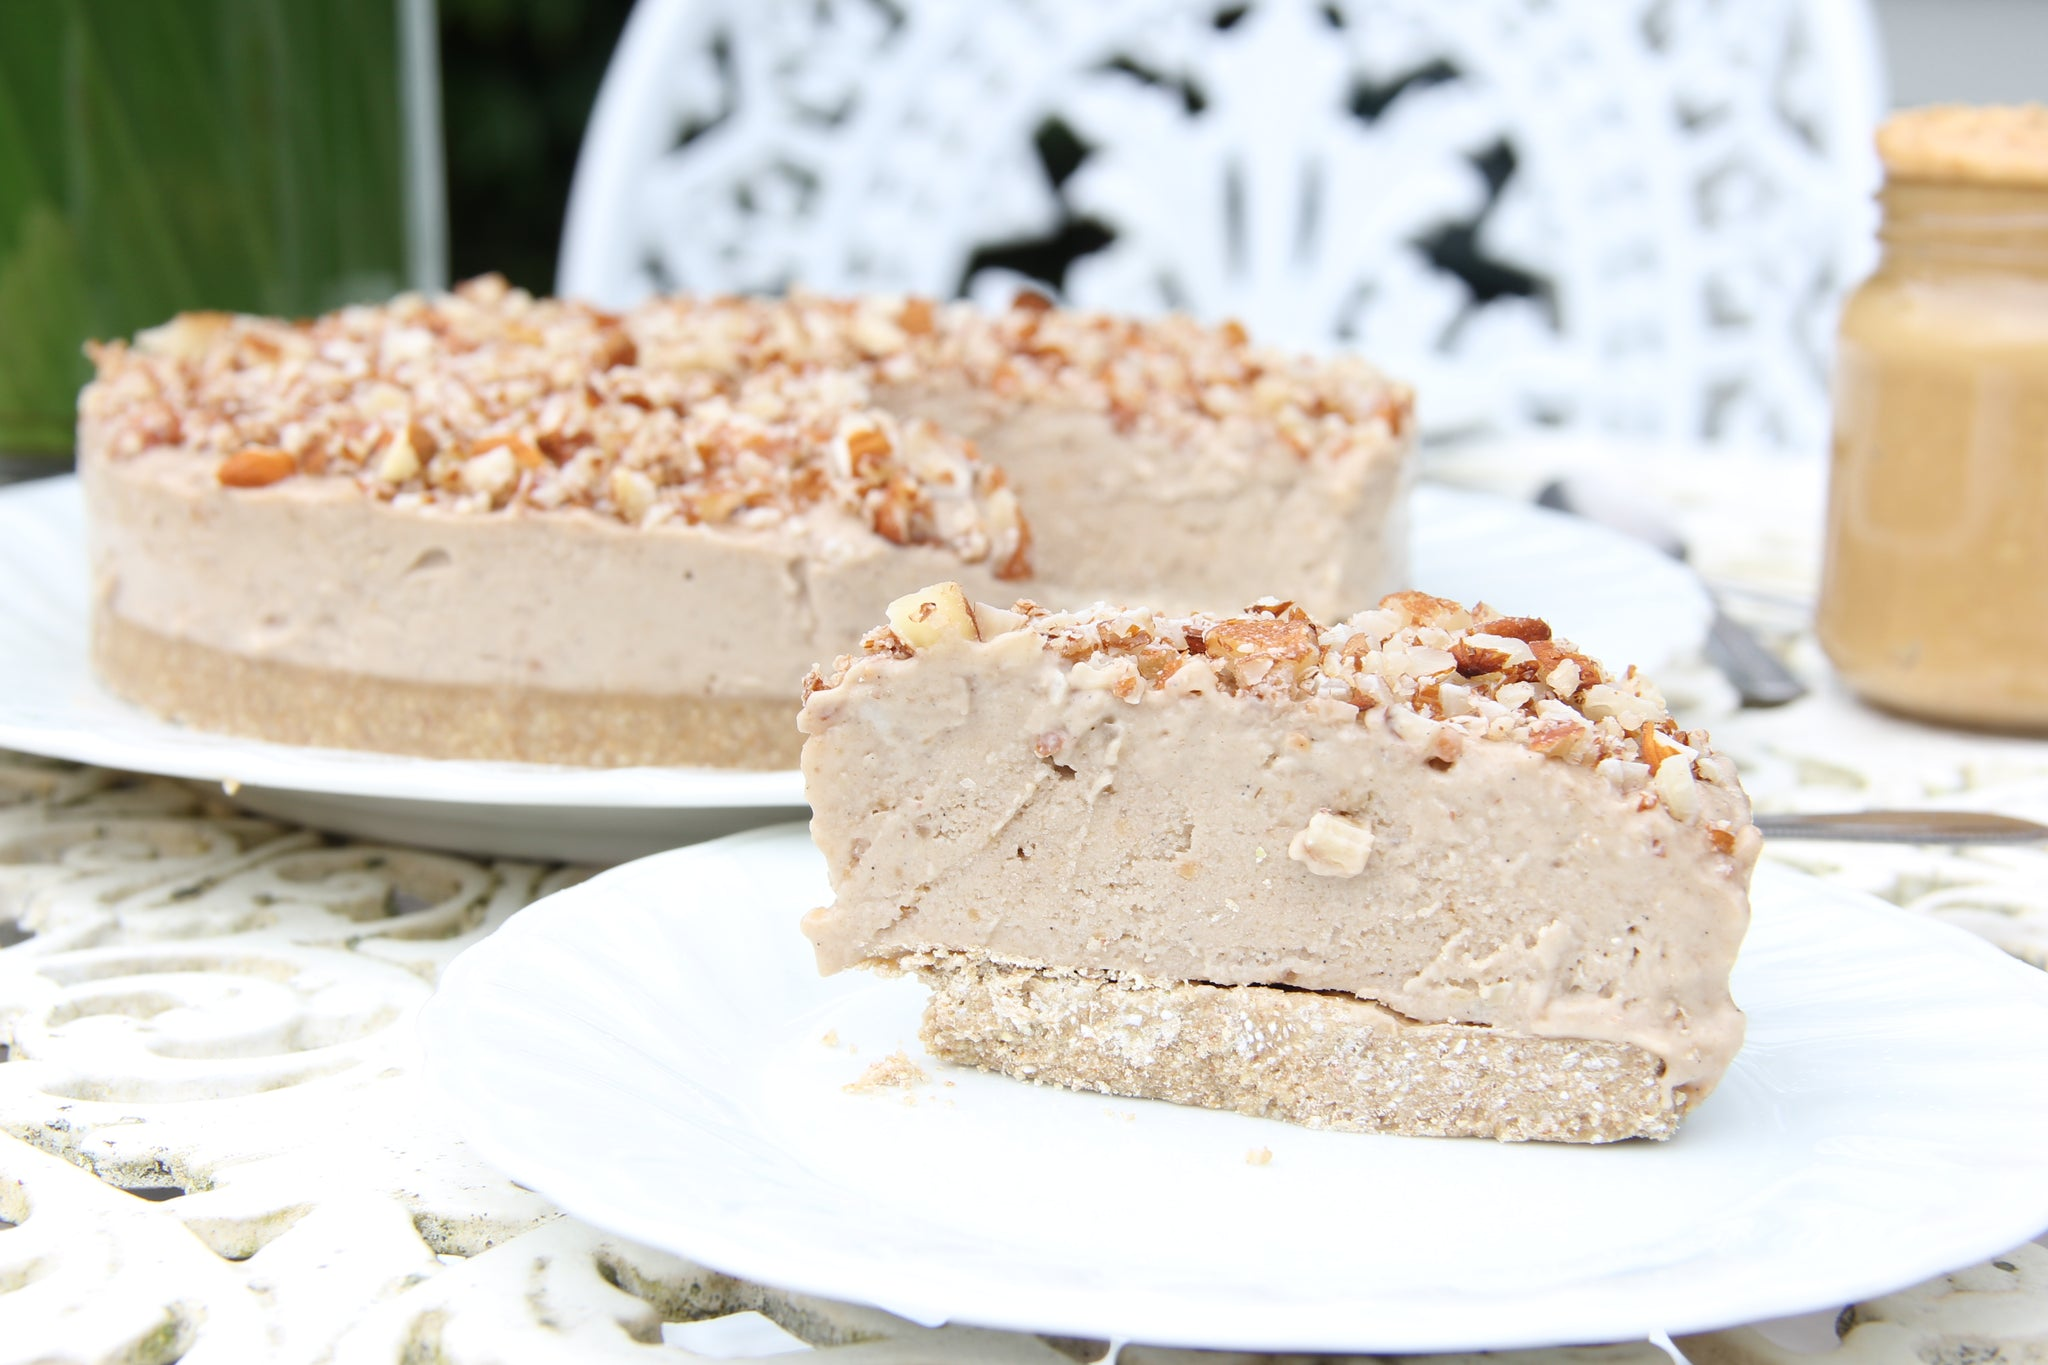 Nutty Ice Cream Cake #cake #healthy #vegan #recipe #dairyfree #sugarfree #glutenfree #plantbased